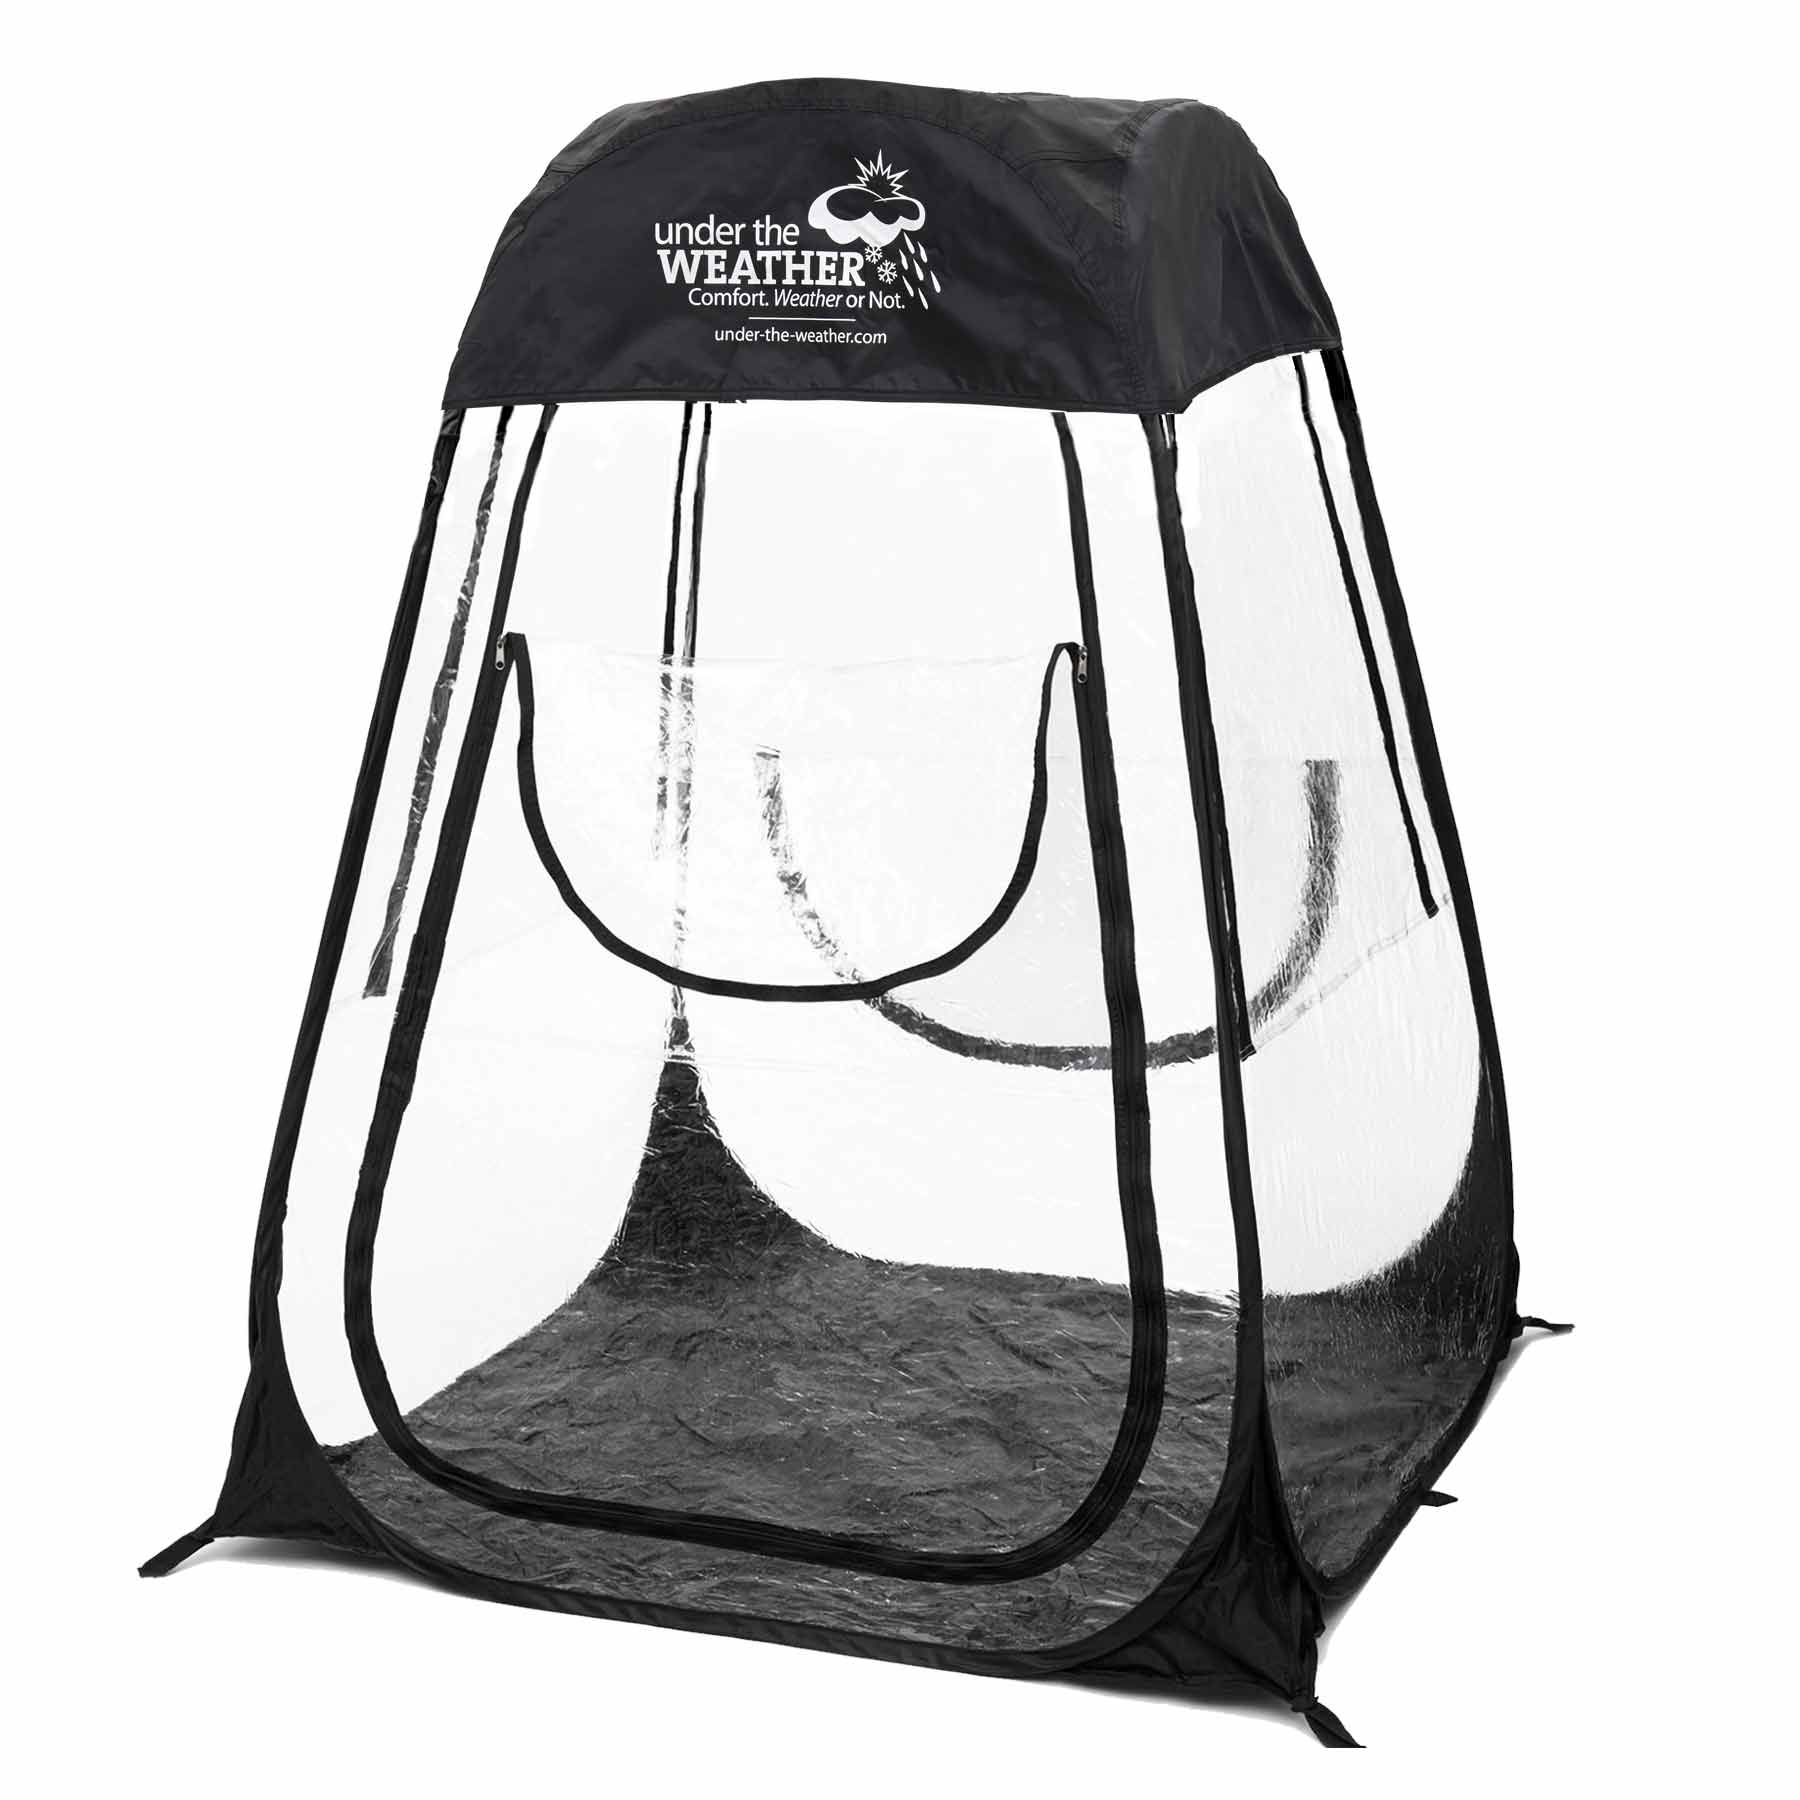 OriginalPod XL 360° 1-Person Pop-up Tent - Under the Weather® - Personal pop-up sports tent for mom, dad, kids, parents - Perfect for soccer, baseball, softball, football, youth team sports - As Seen on Shark Tank